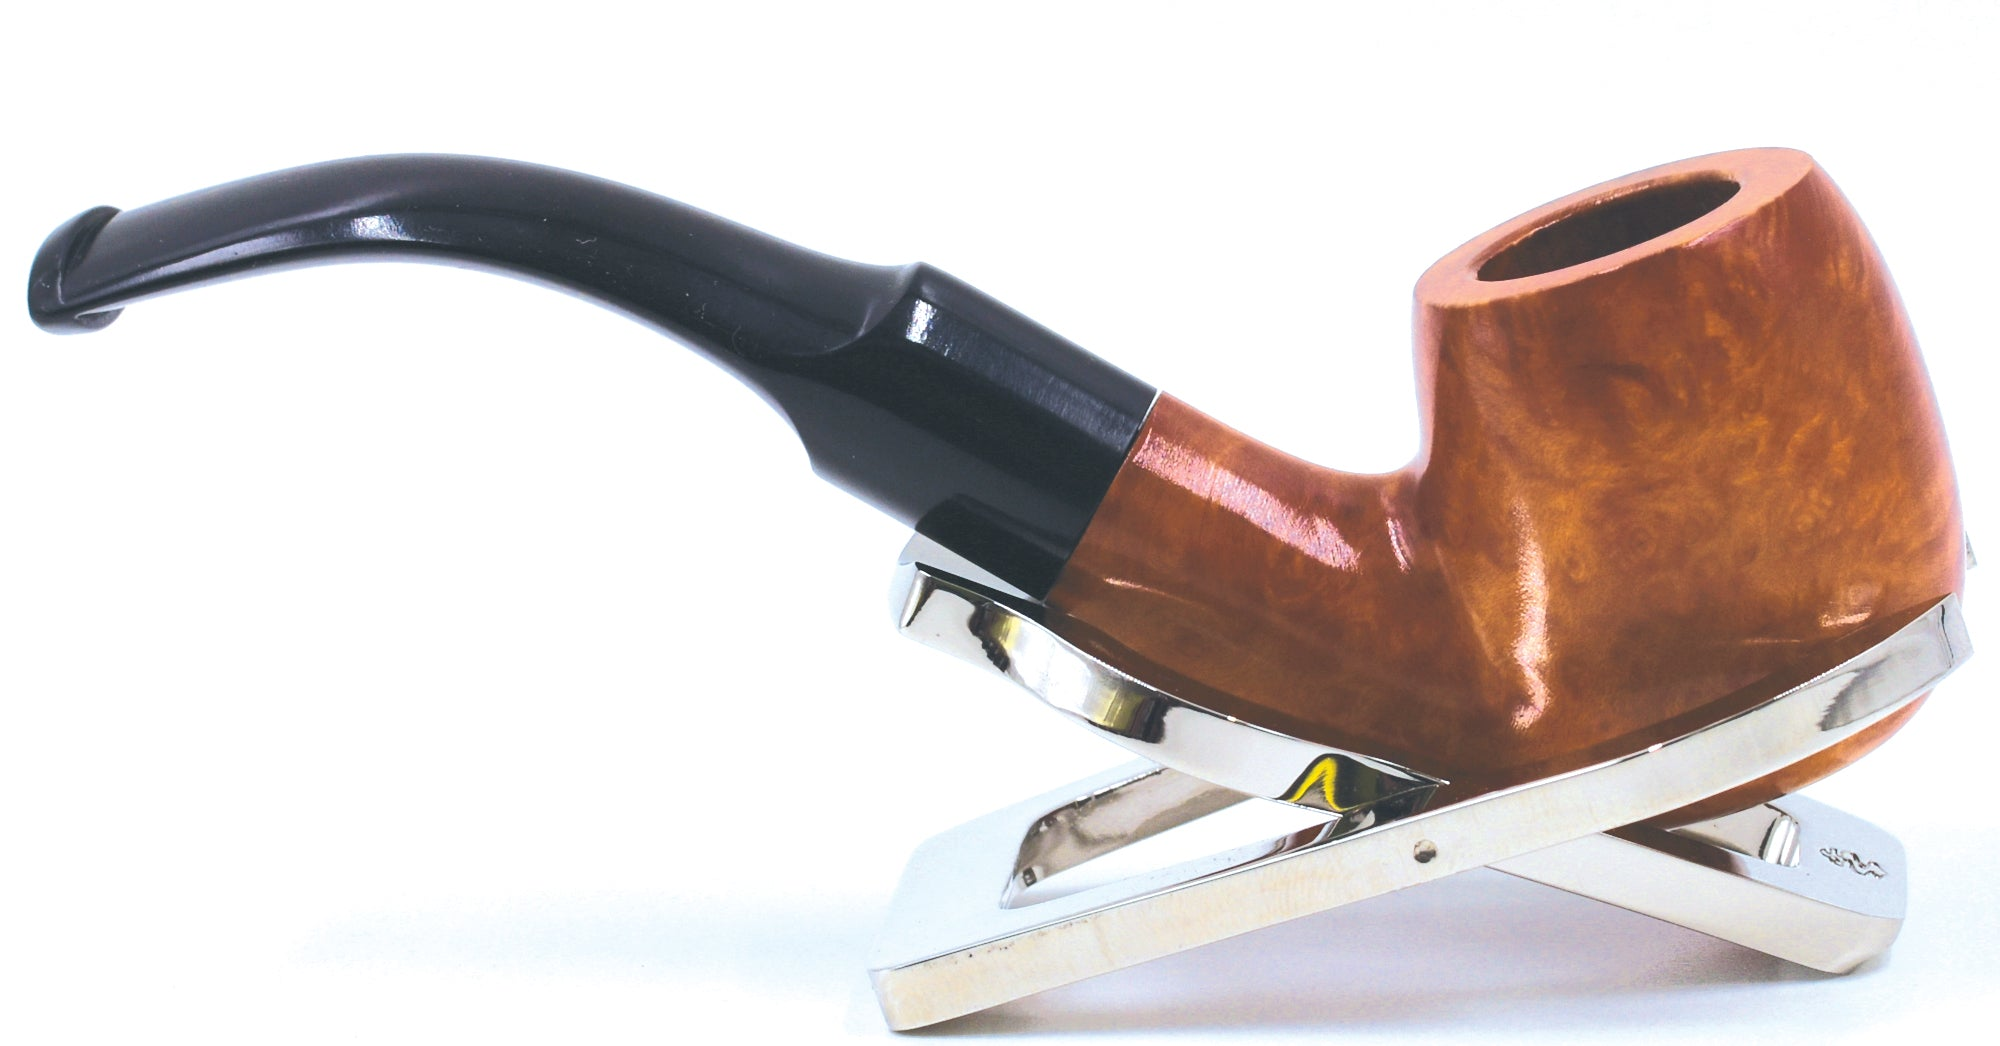 LEGENDEX® SCALADI* 6 MM Filtered Briar Smoking Pipe Made In Italy 01-08-103